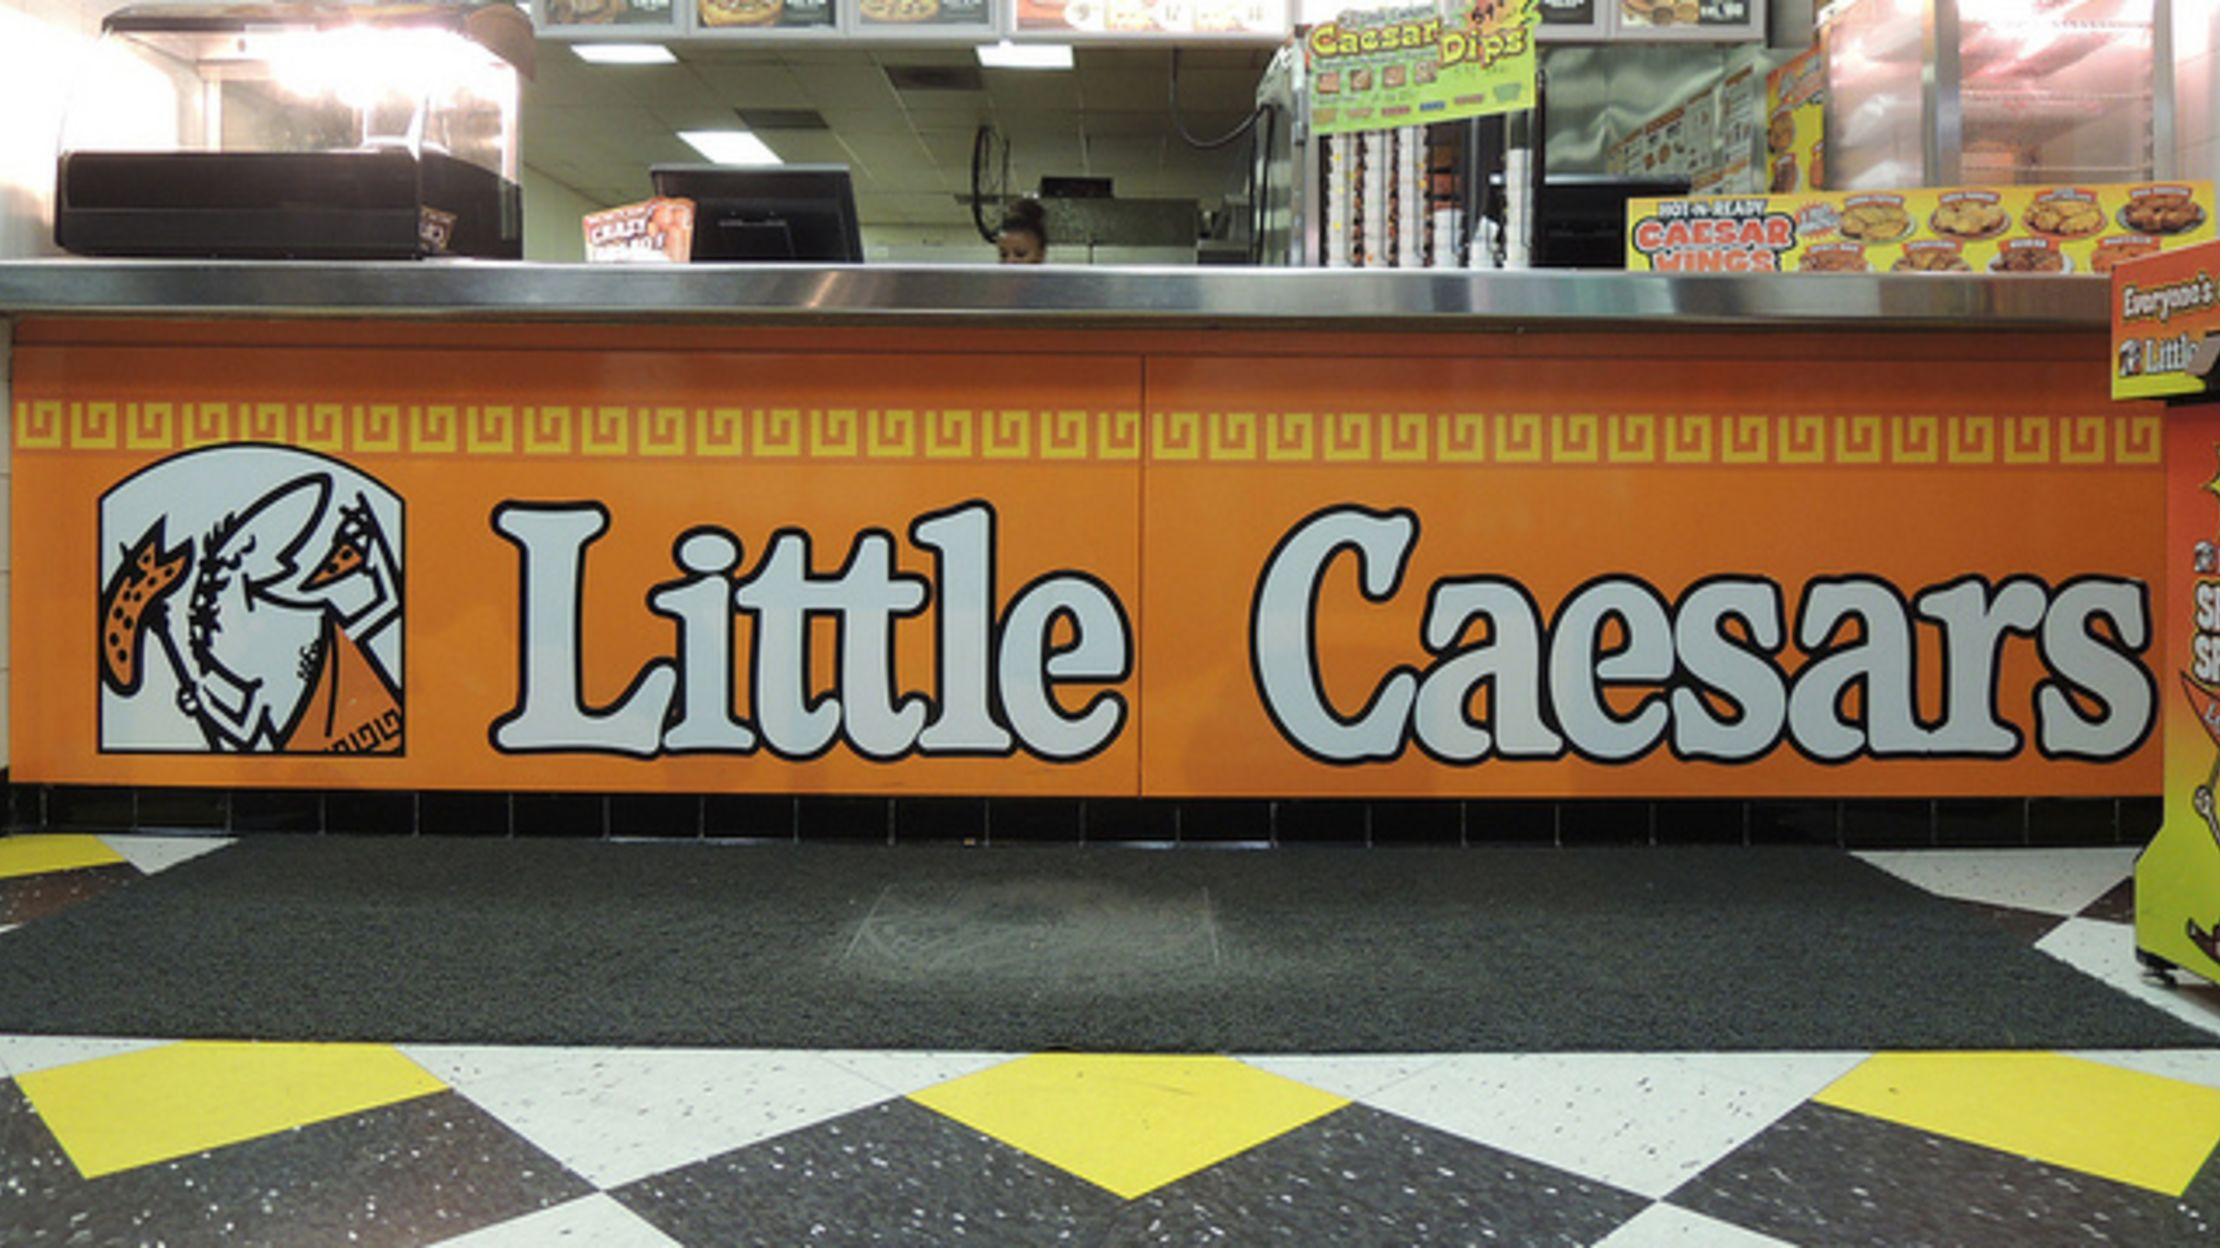 8 Hot-N-Ready Facts About Little Caesars | Mental Floss